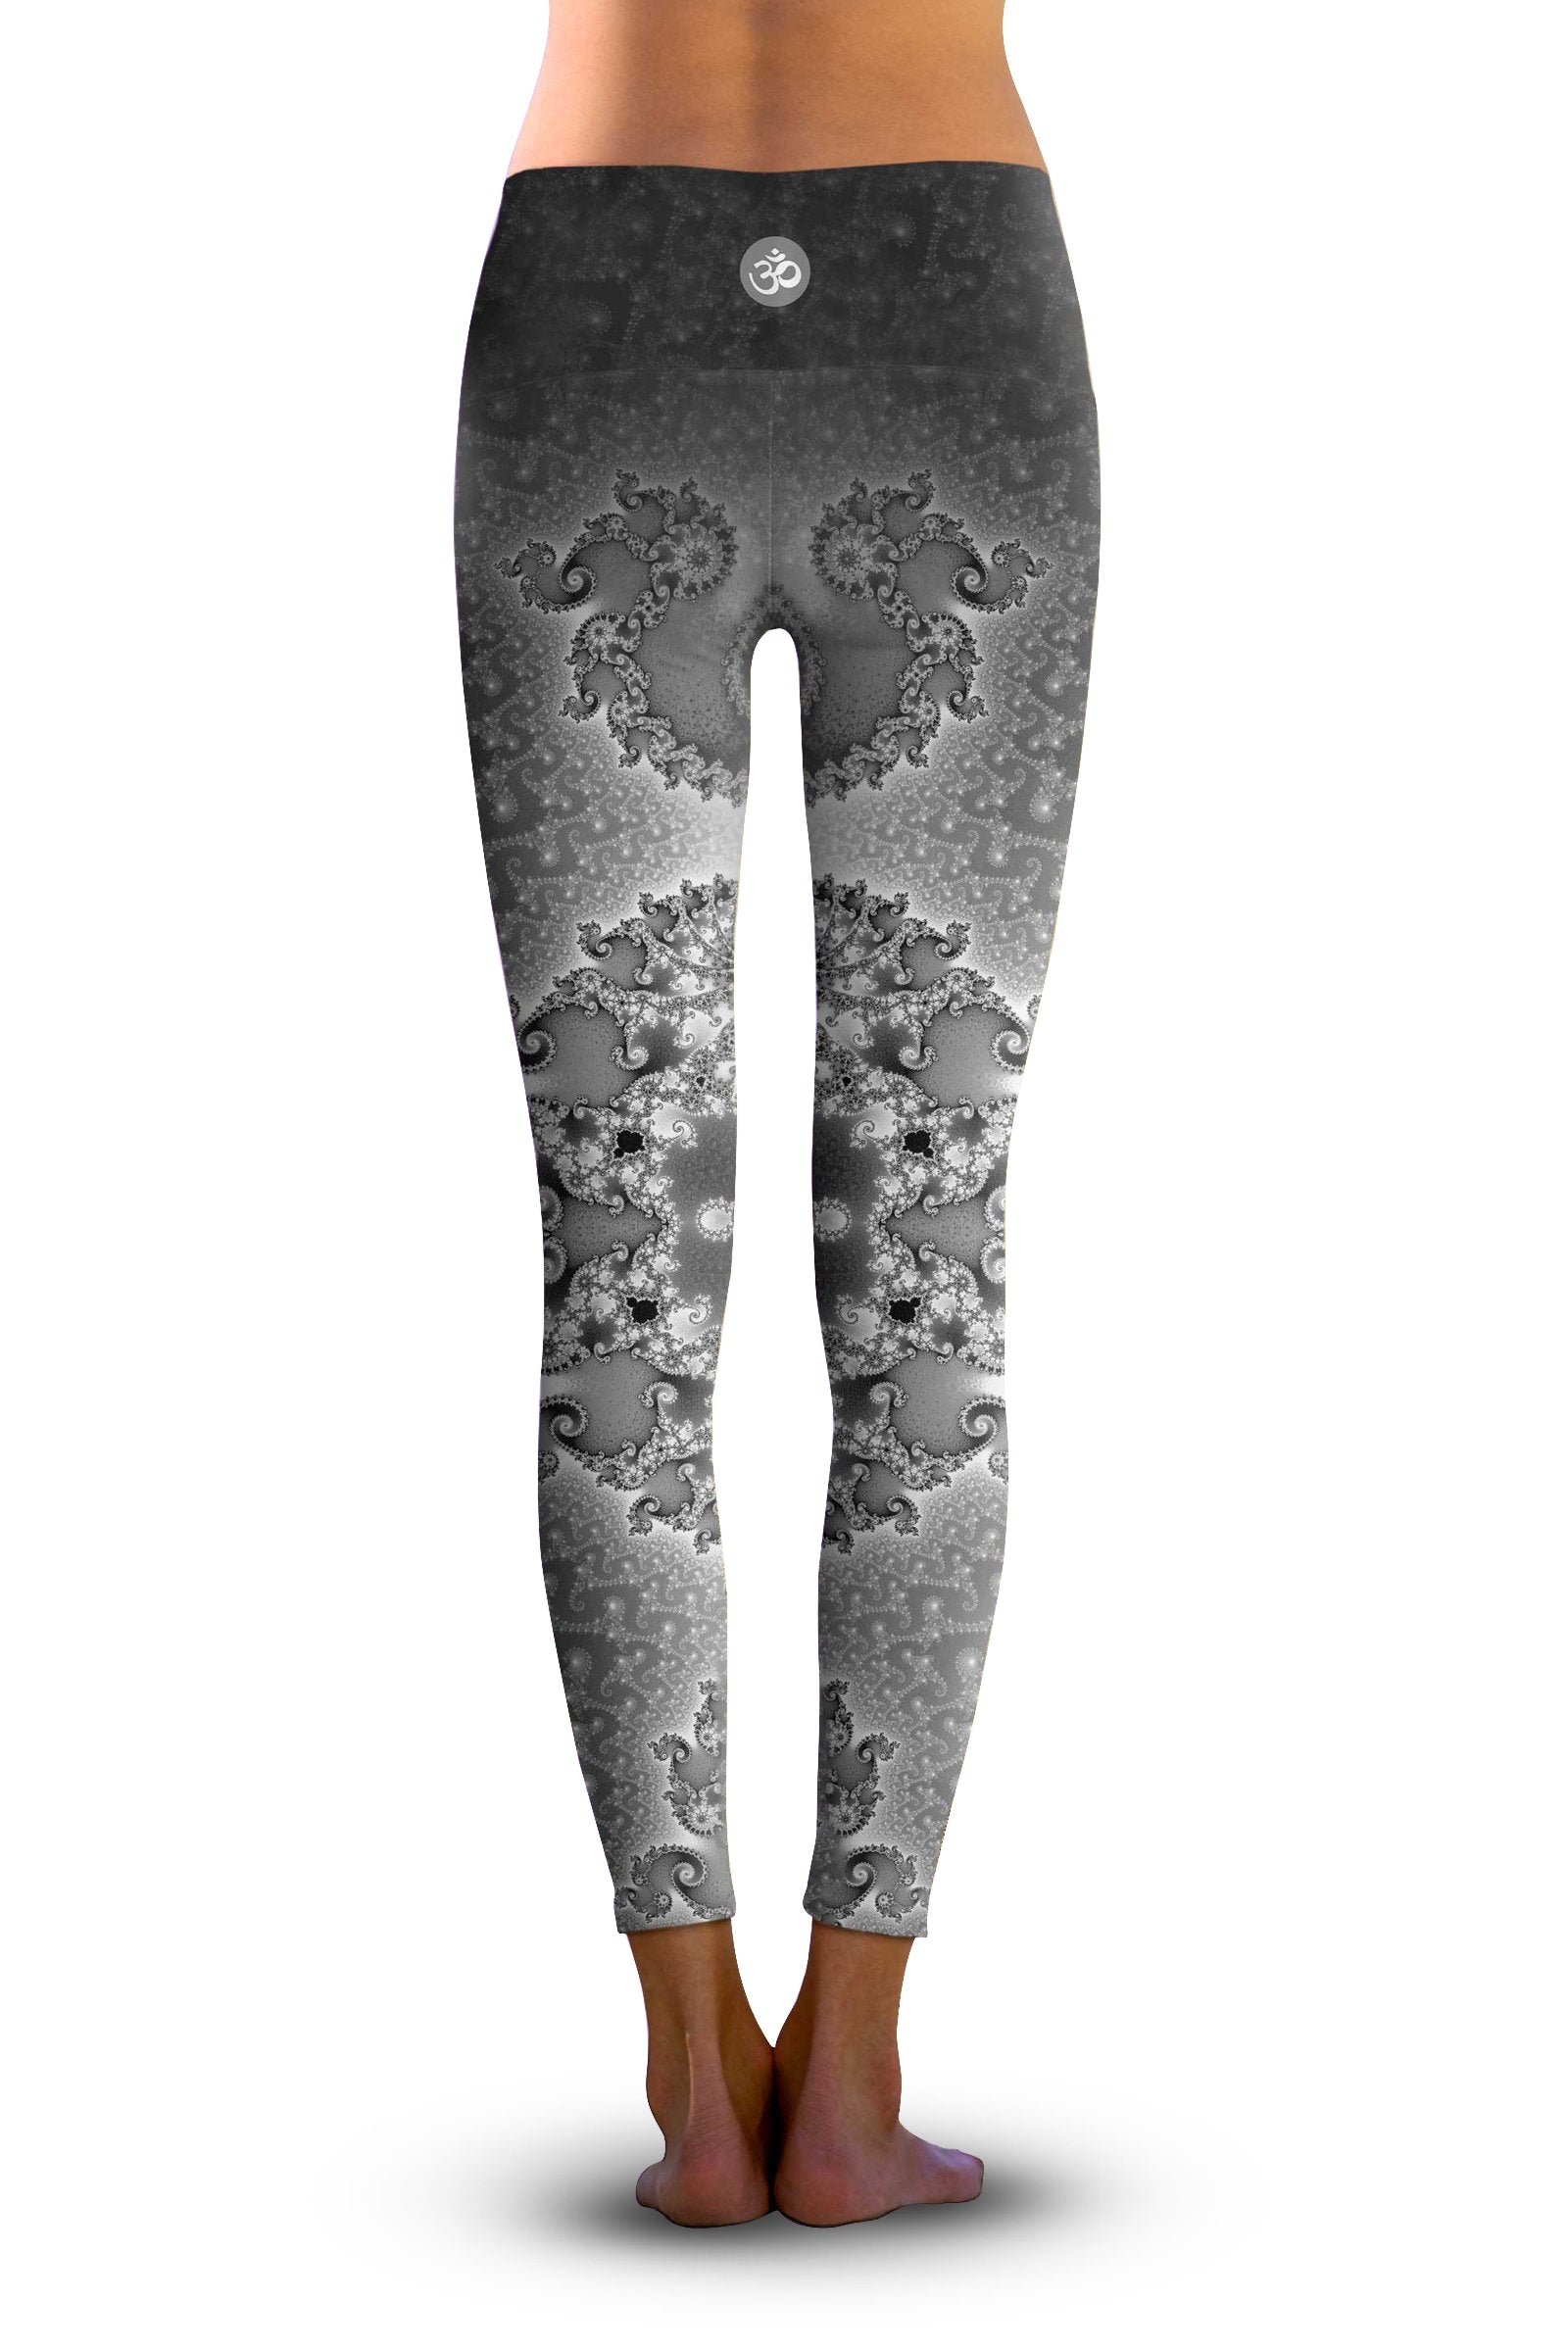 #Seahorse Spiral Fractal, Eco-Friendly Active Performance Leggings